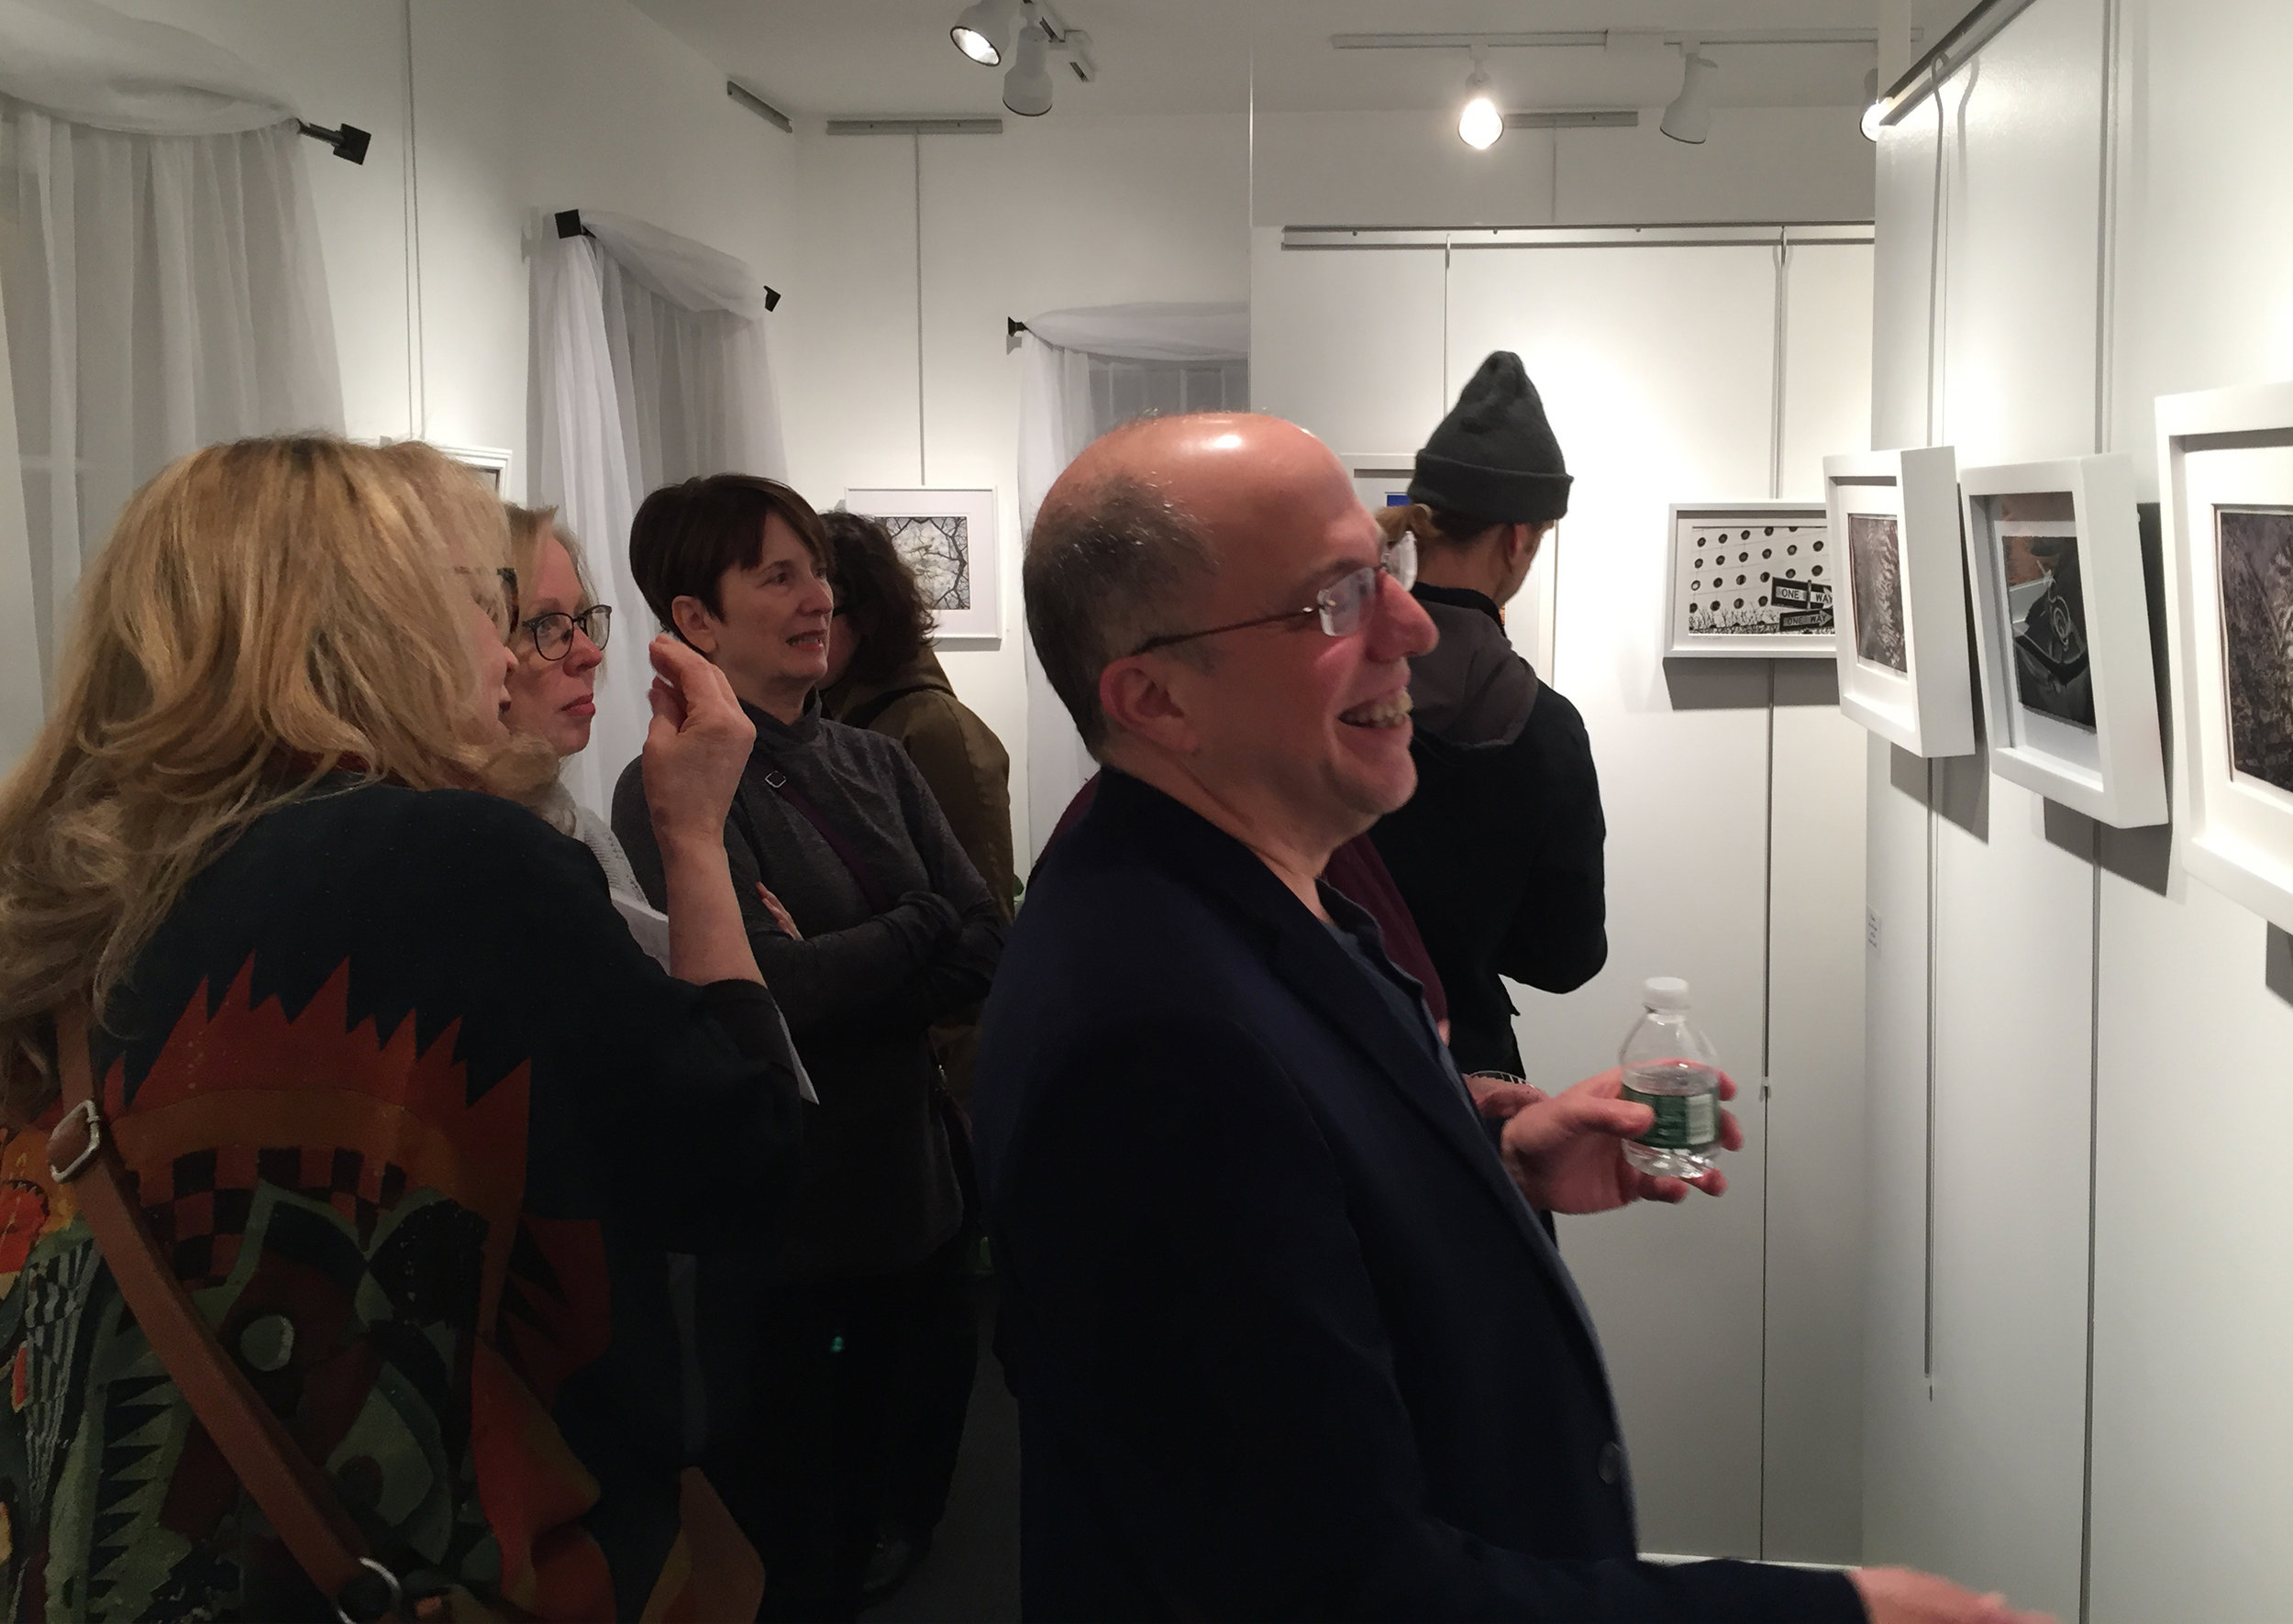 Guests discussing the works